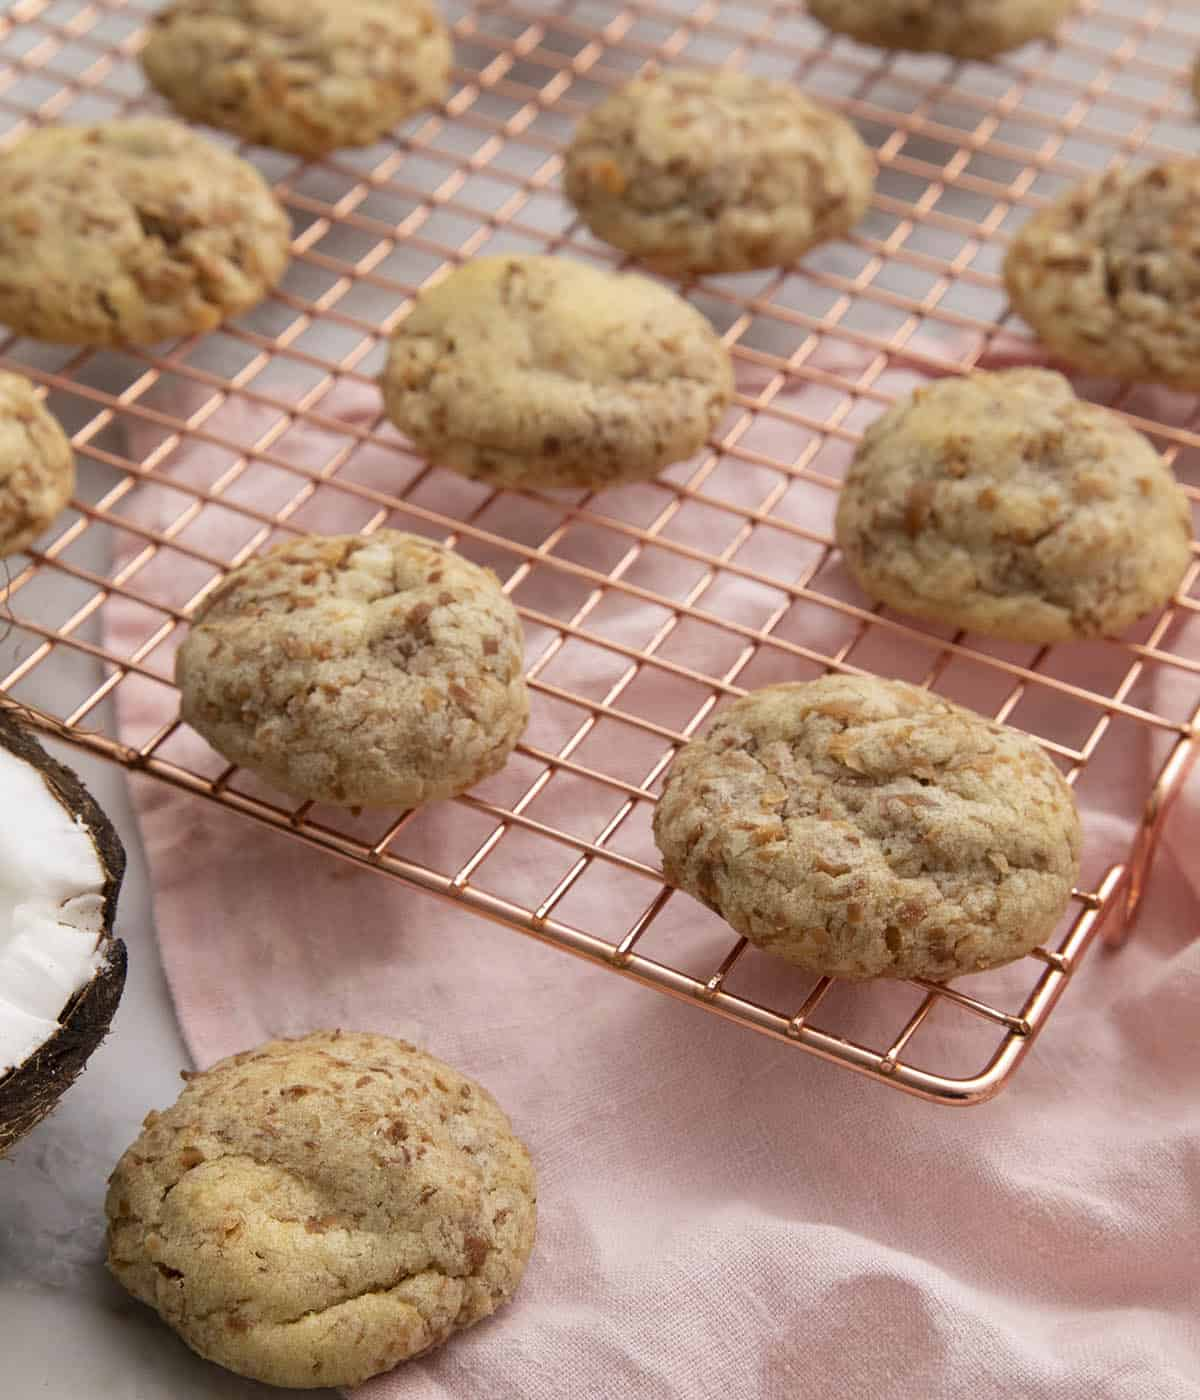 Coconut cookies fresh out of the oven on a copper rack.